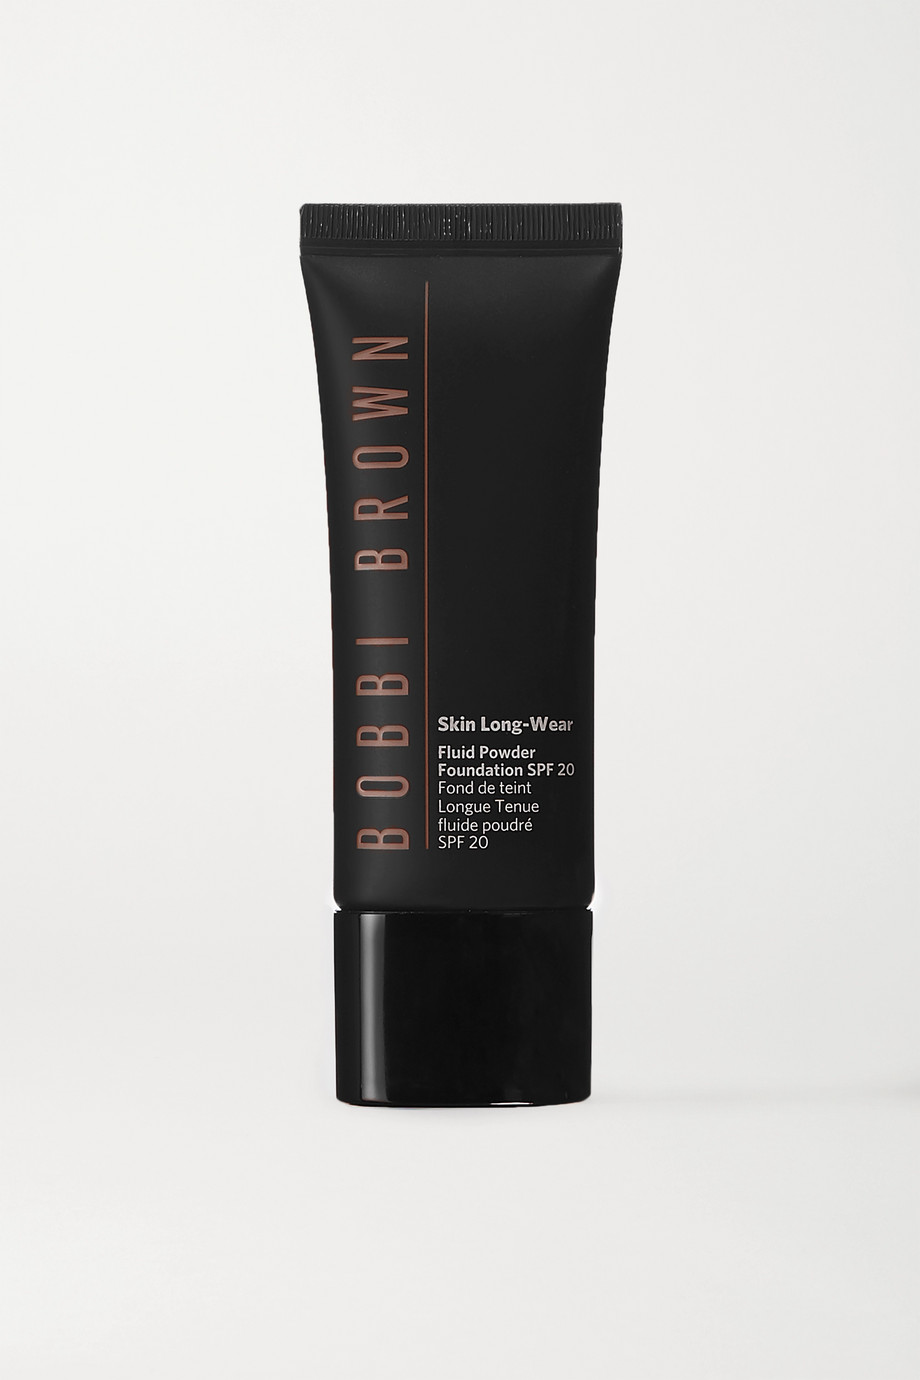 Bobbi Brown Skin Long-Wear Fluid Powder Foundation SPF20 - Chestnut